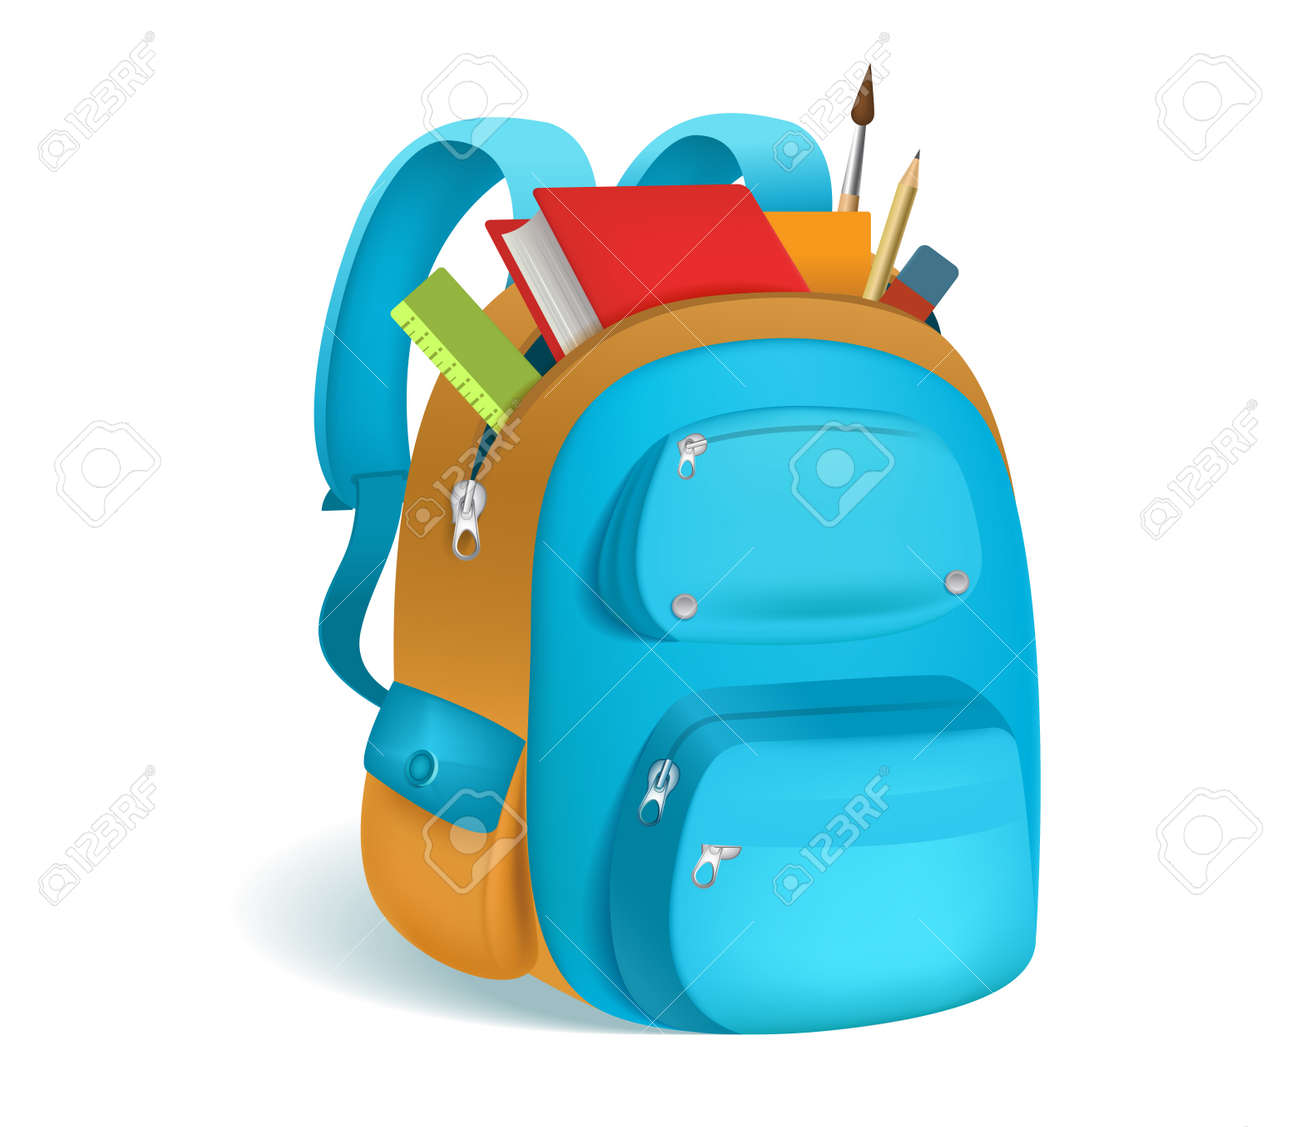 Colorful schoolbag with school supplies. 3d backpack with zippers isolated on white background. Vector illustration. Eps 10. - 83181512